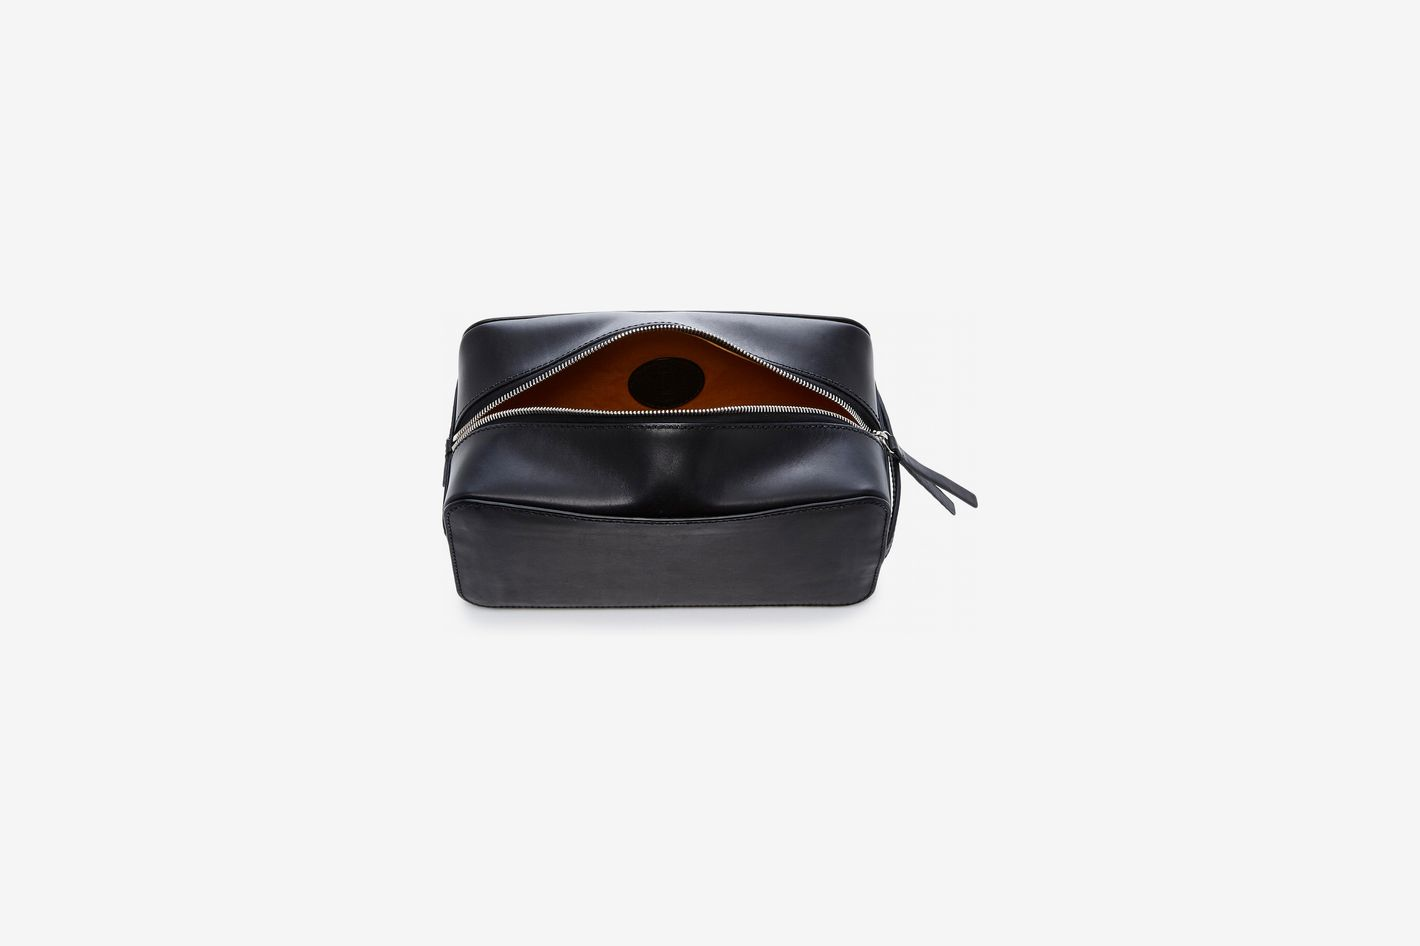 Hopper Goods Leather Dopp Kit